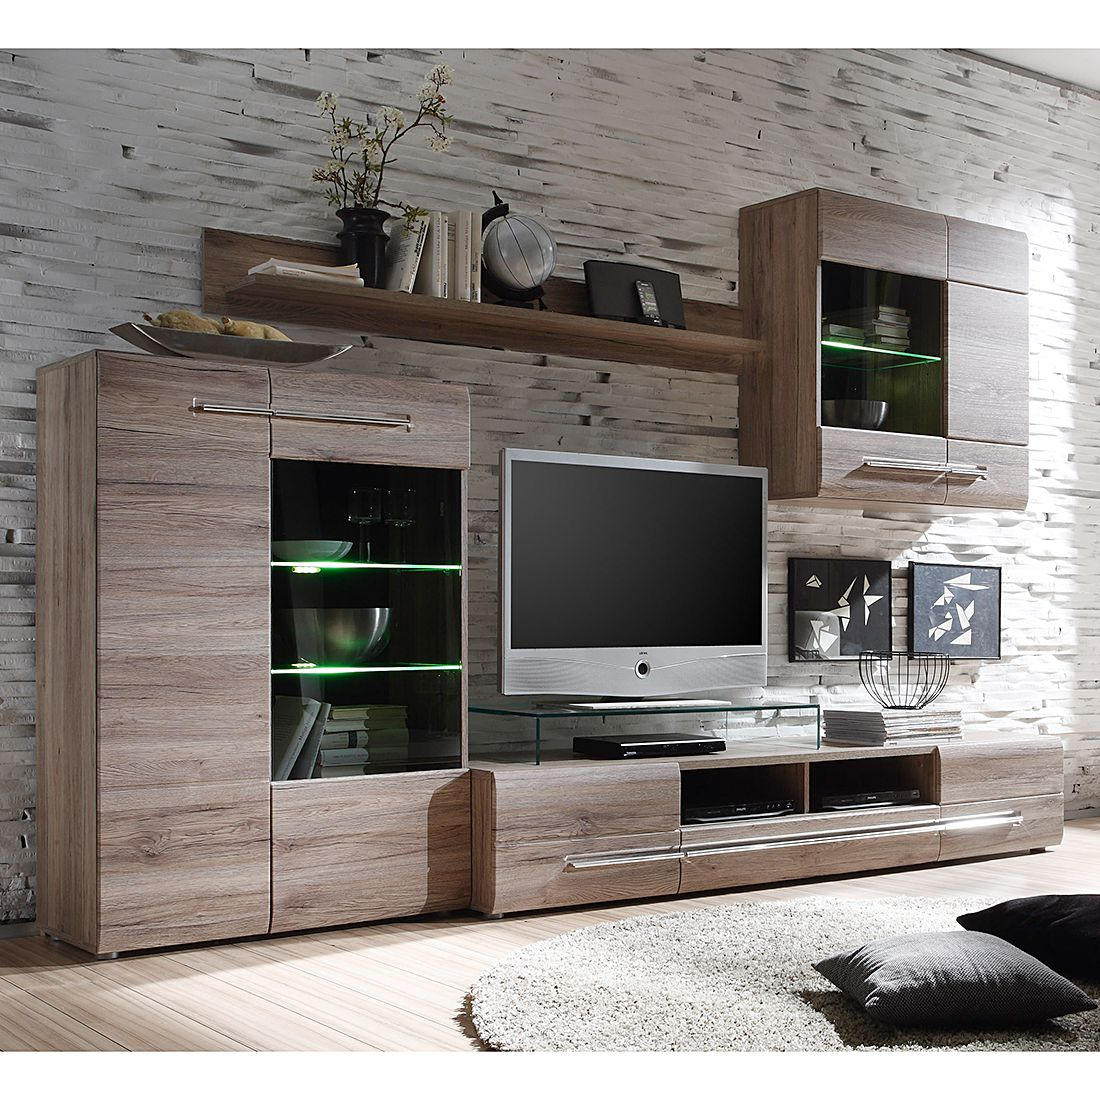 wohnwand robaa 4 teilig eiche sanremo dunkel dekor modoform kaufen. Black Bedroom Furniture Sets. Home Design Ideas